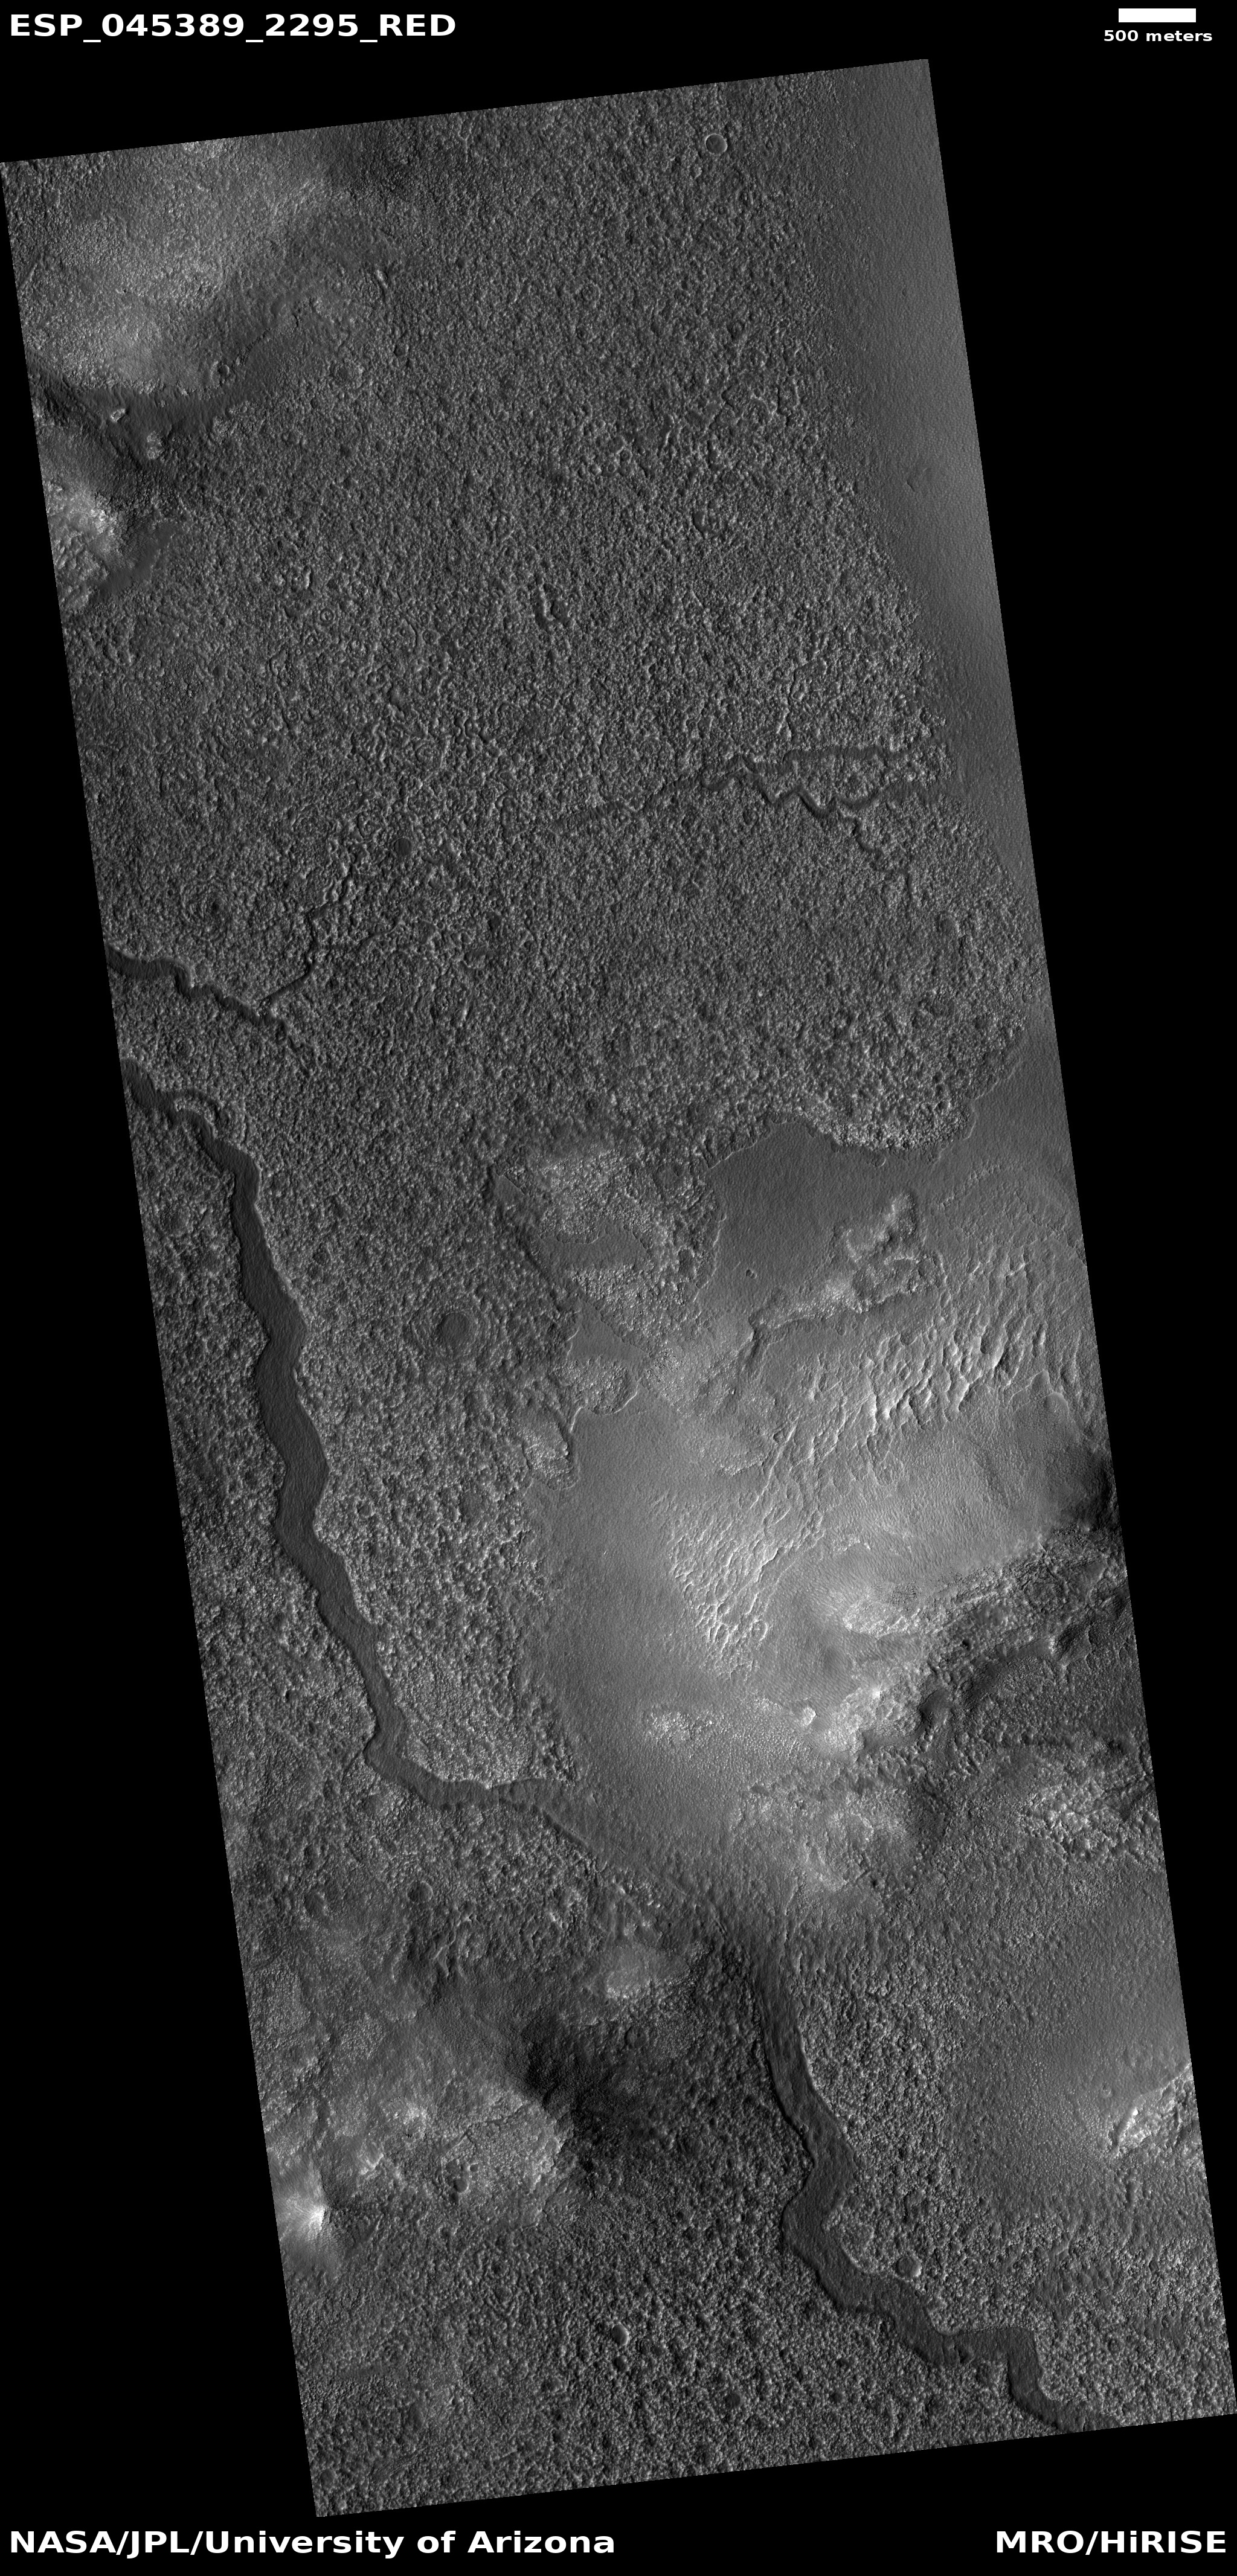 Wide view of channels in Lyot Crater, as seen by HiRISE under HiWish program